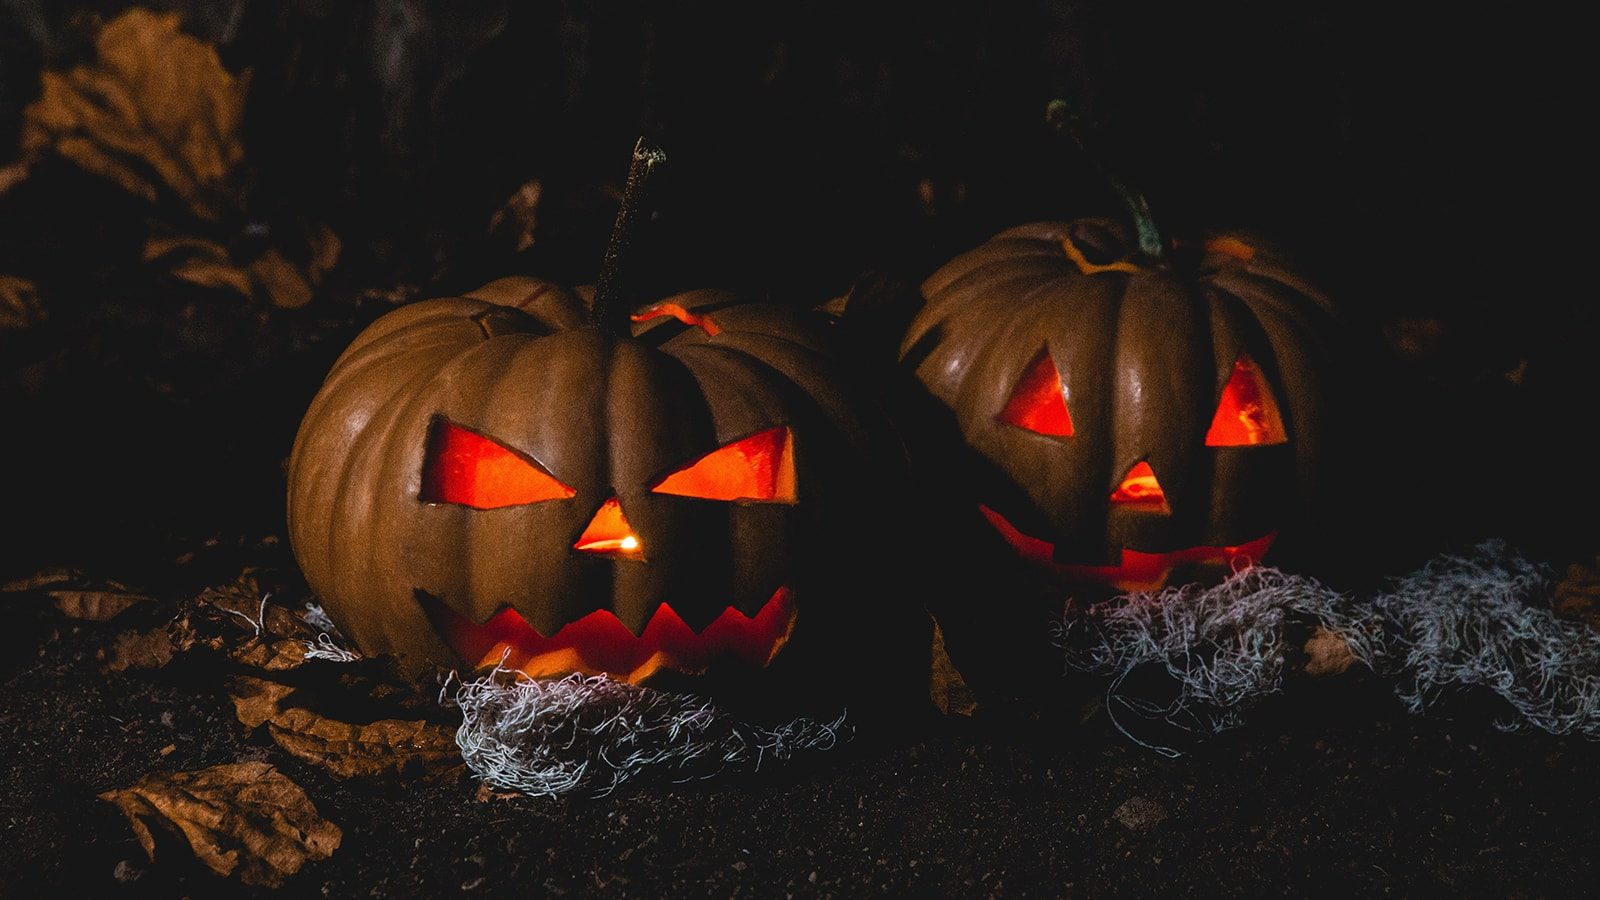 Spooktacular Halloween Jack-O-Lantern Design Ideas to Inspire You this Holiday